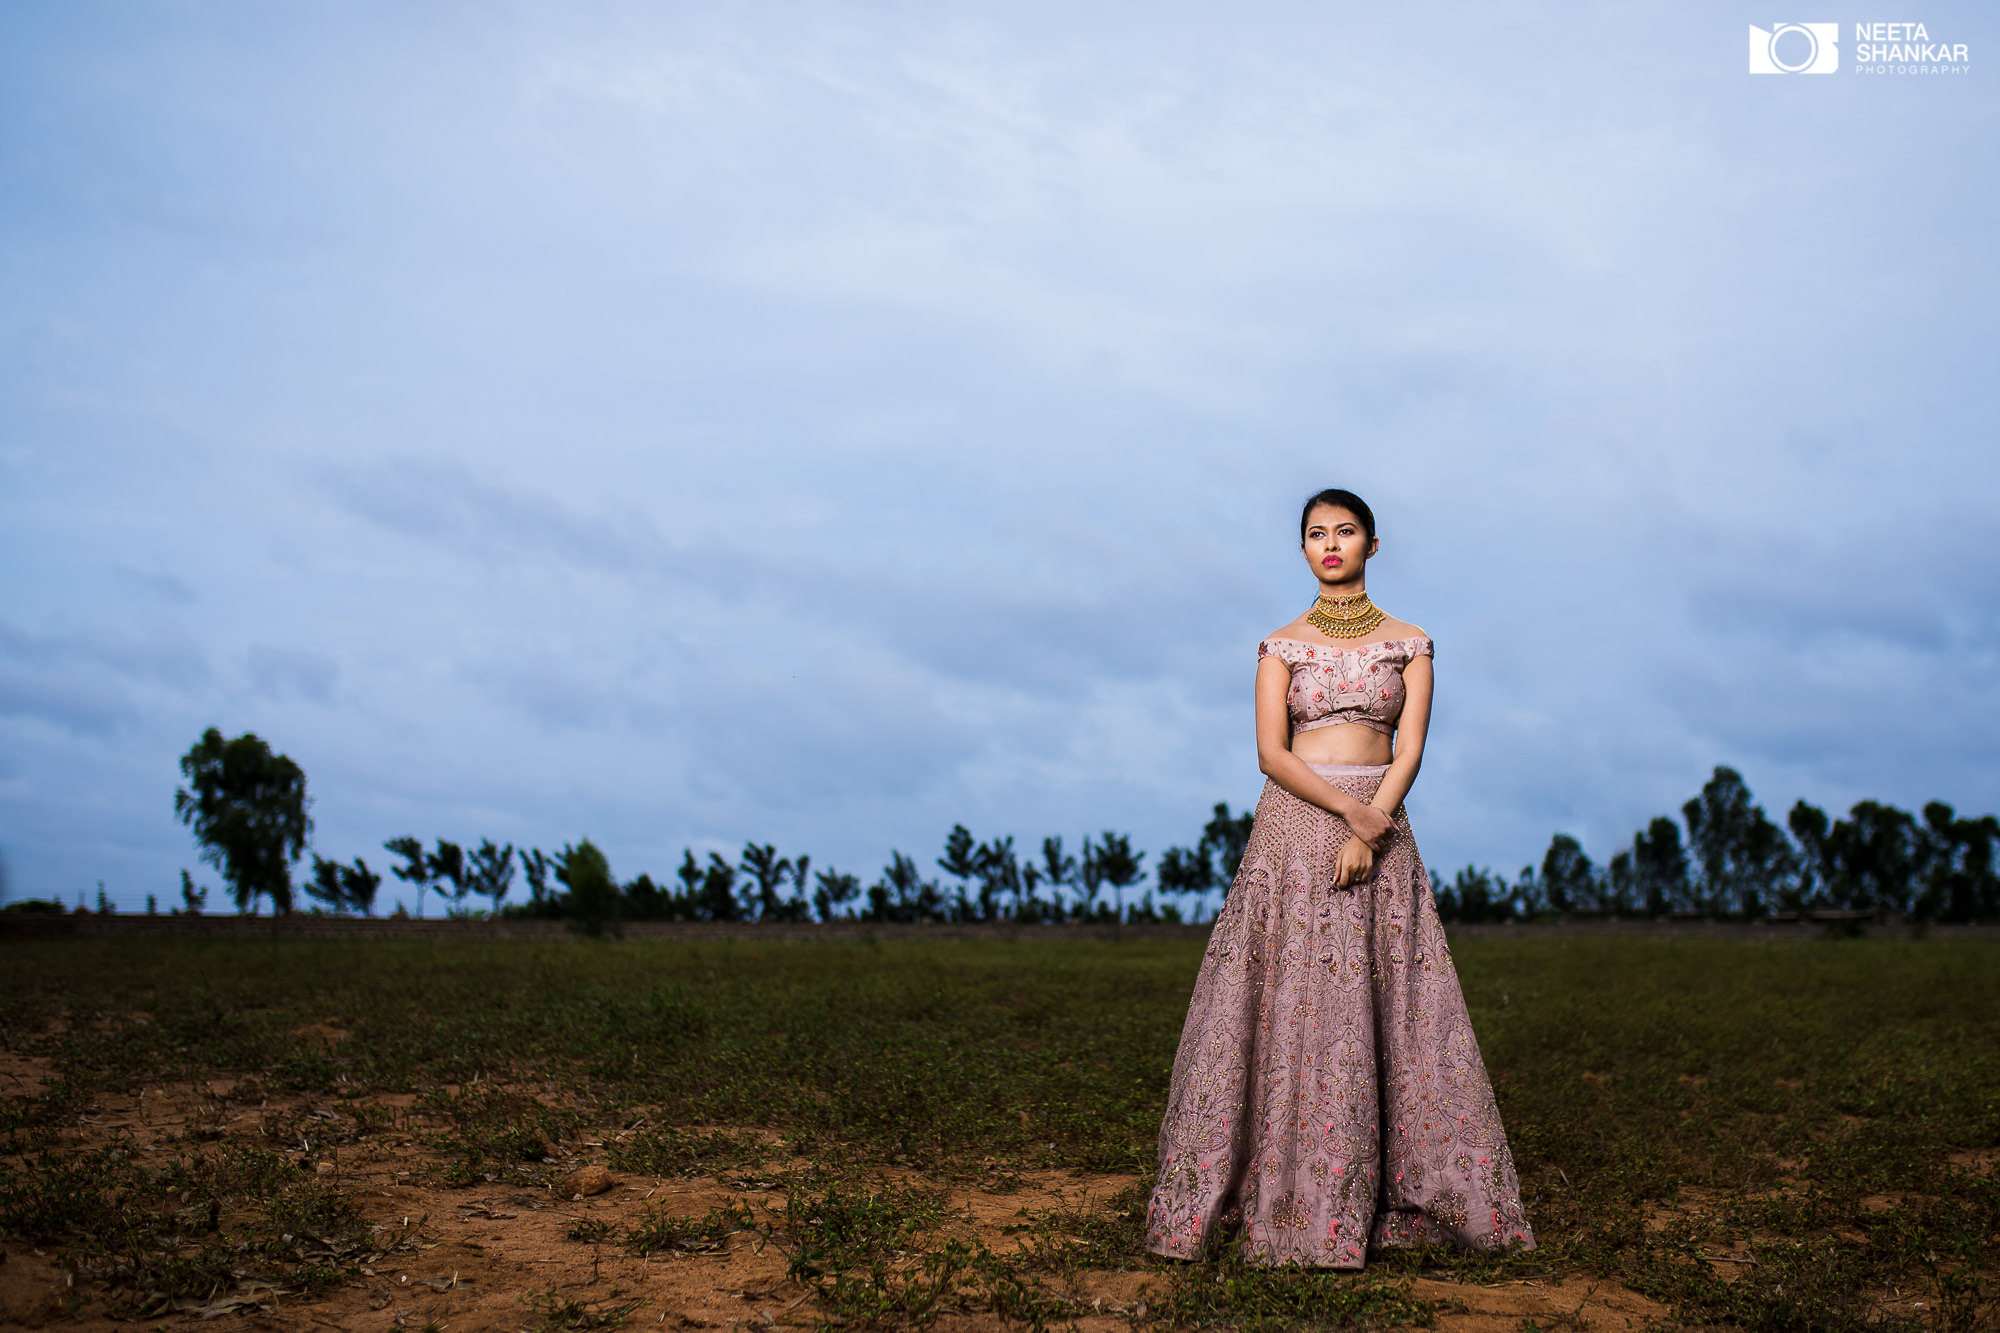 Neeta-Shankar-Photography-Godox-AD600Pro-AD600-sample-images-review-first-impressions